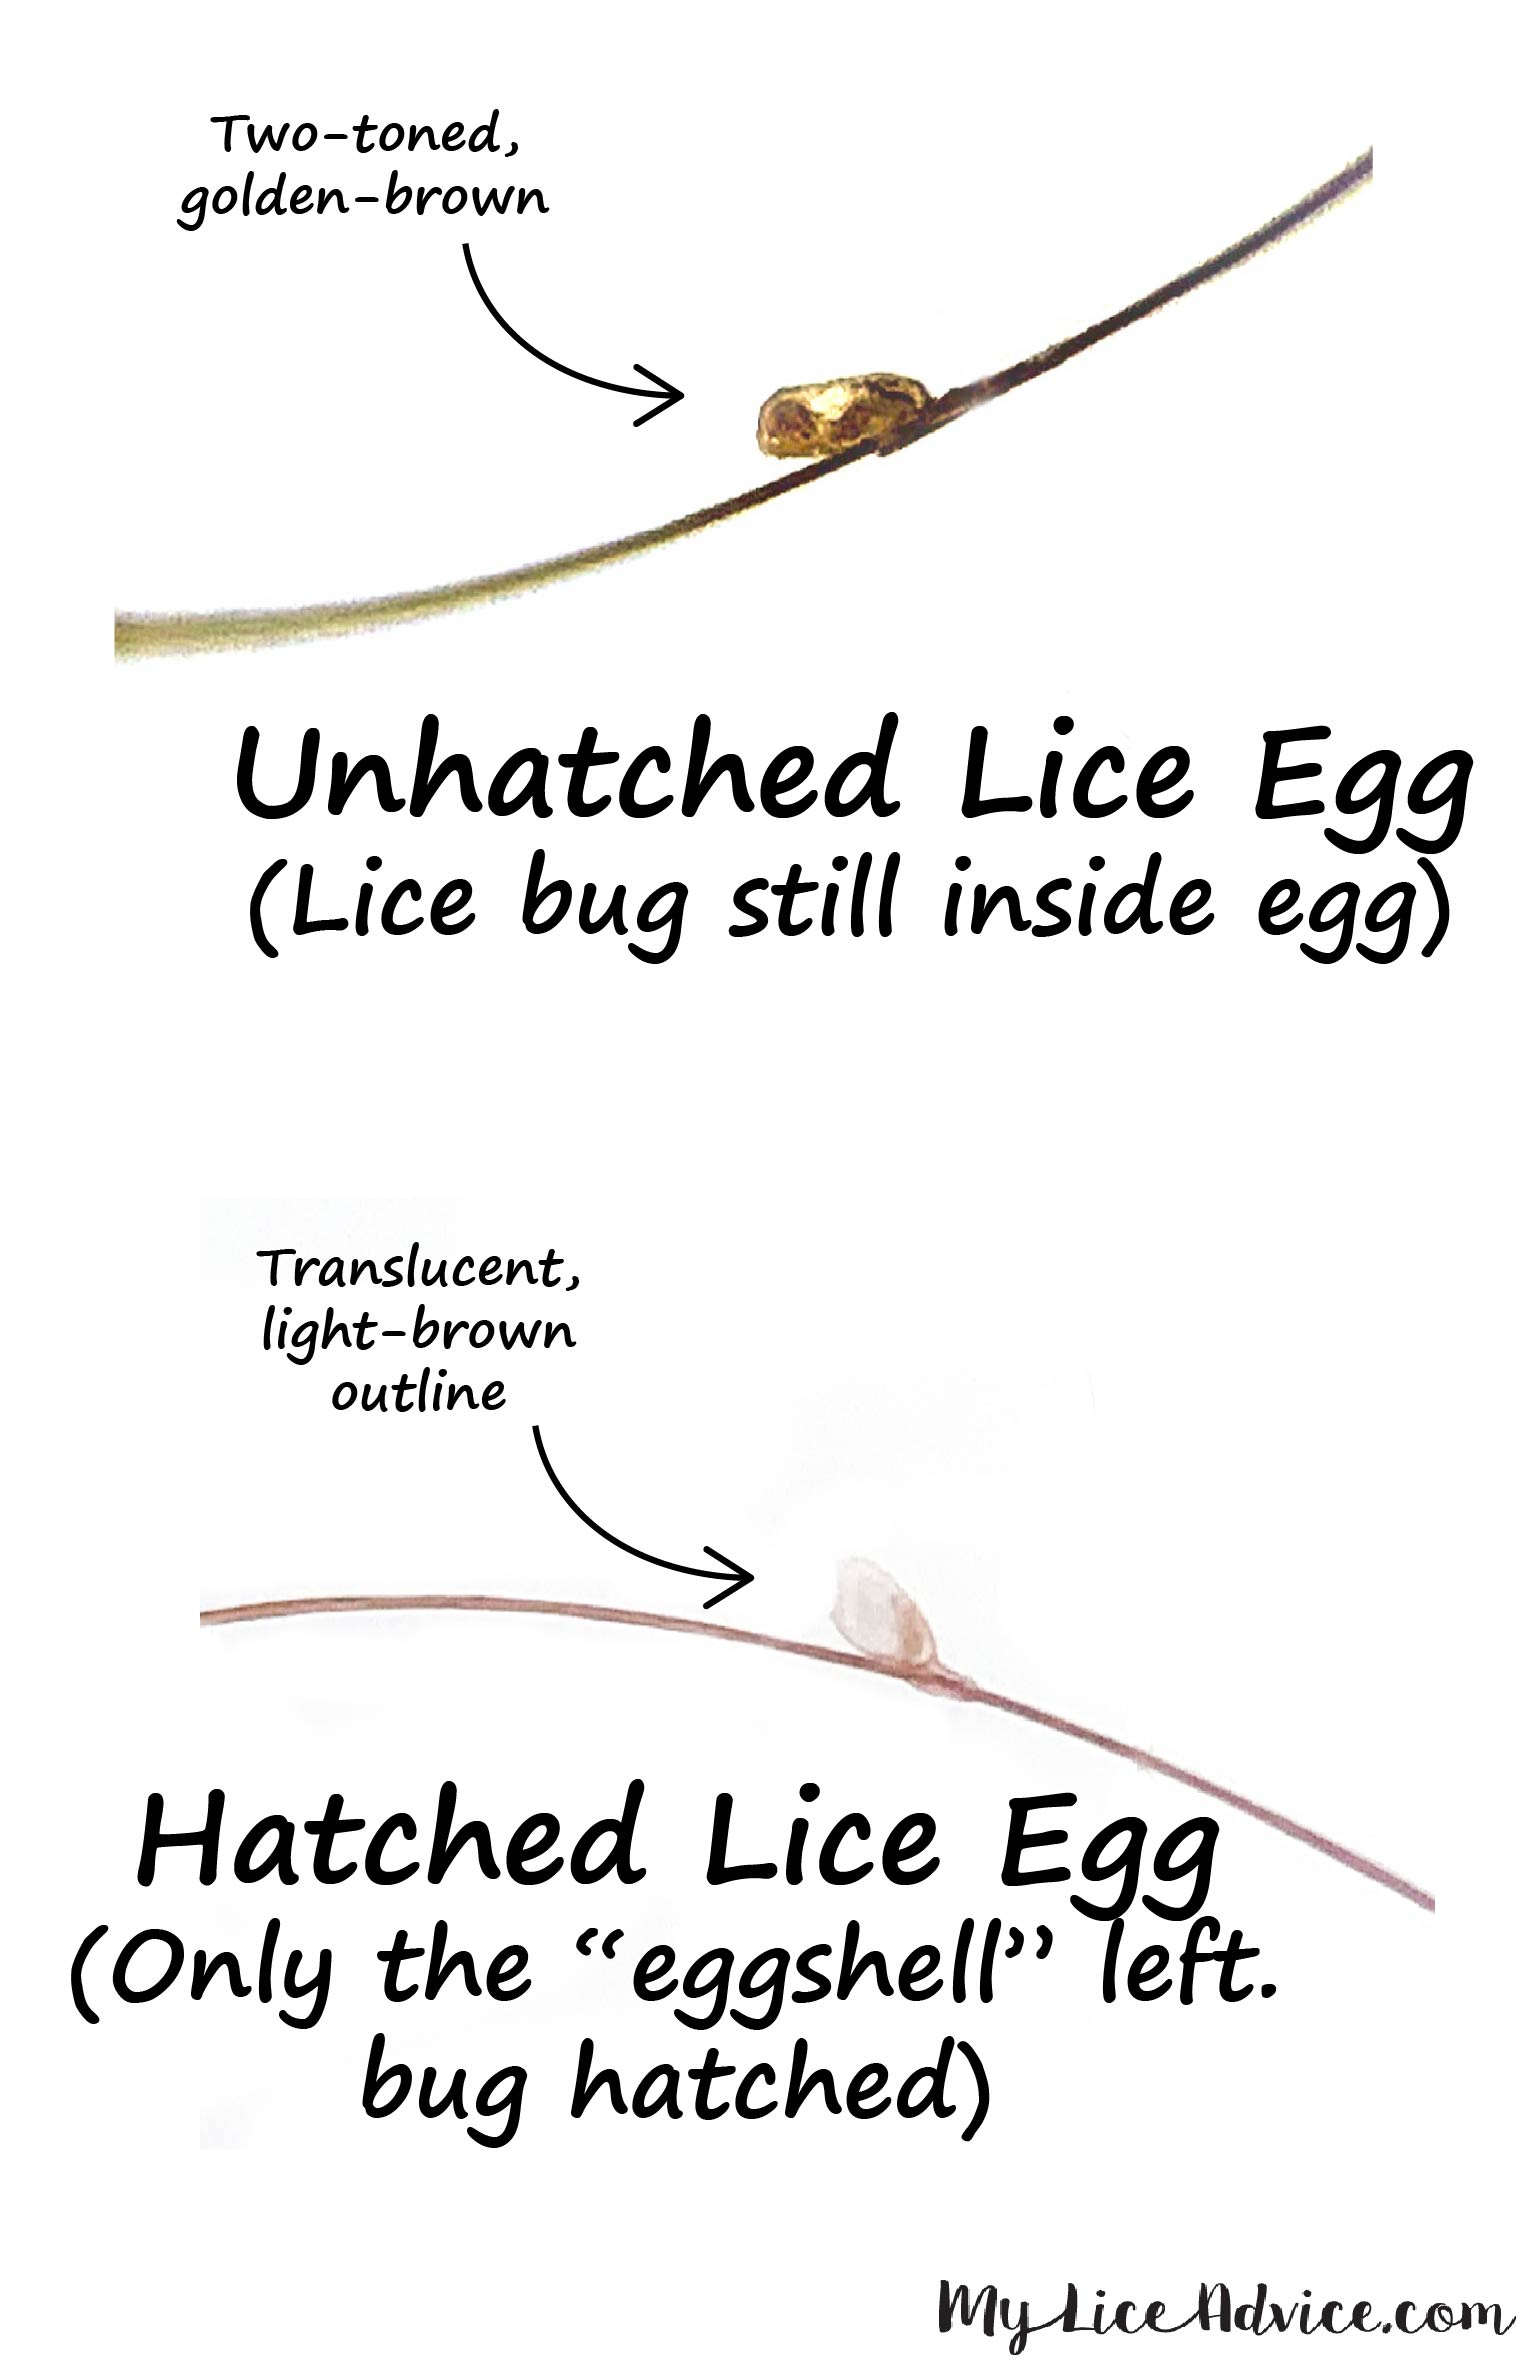 Side-by-side comparing hatched and unhatched lice eggs. Unhatched, brown lice egg with arrow and hatched, translucent lice egg with arrow